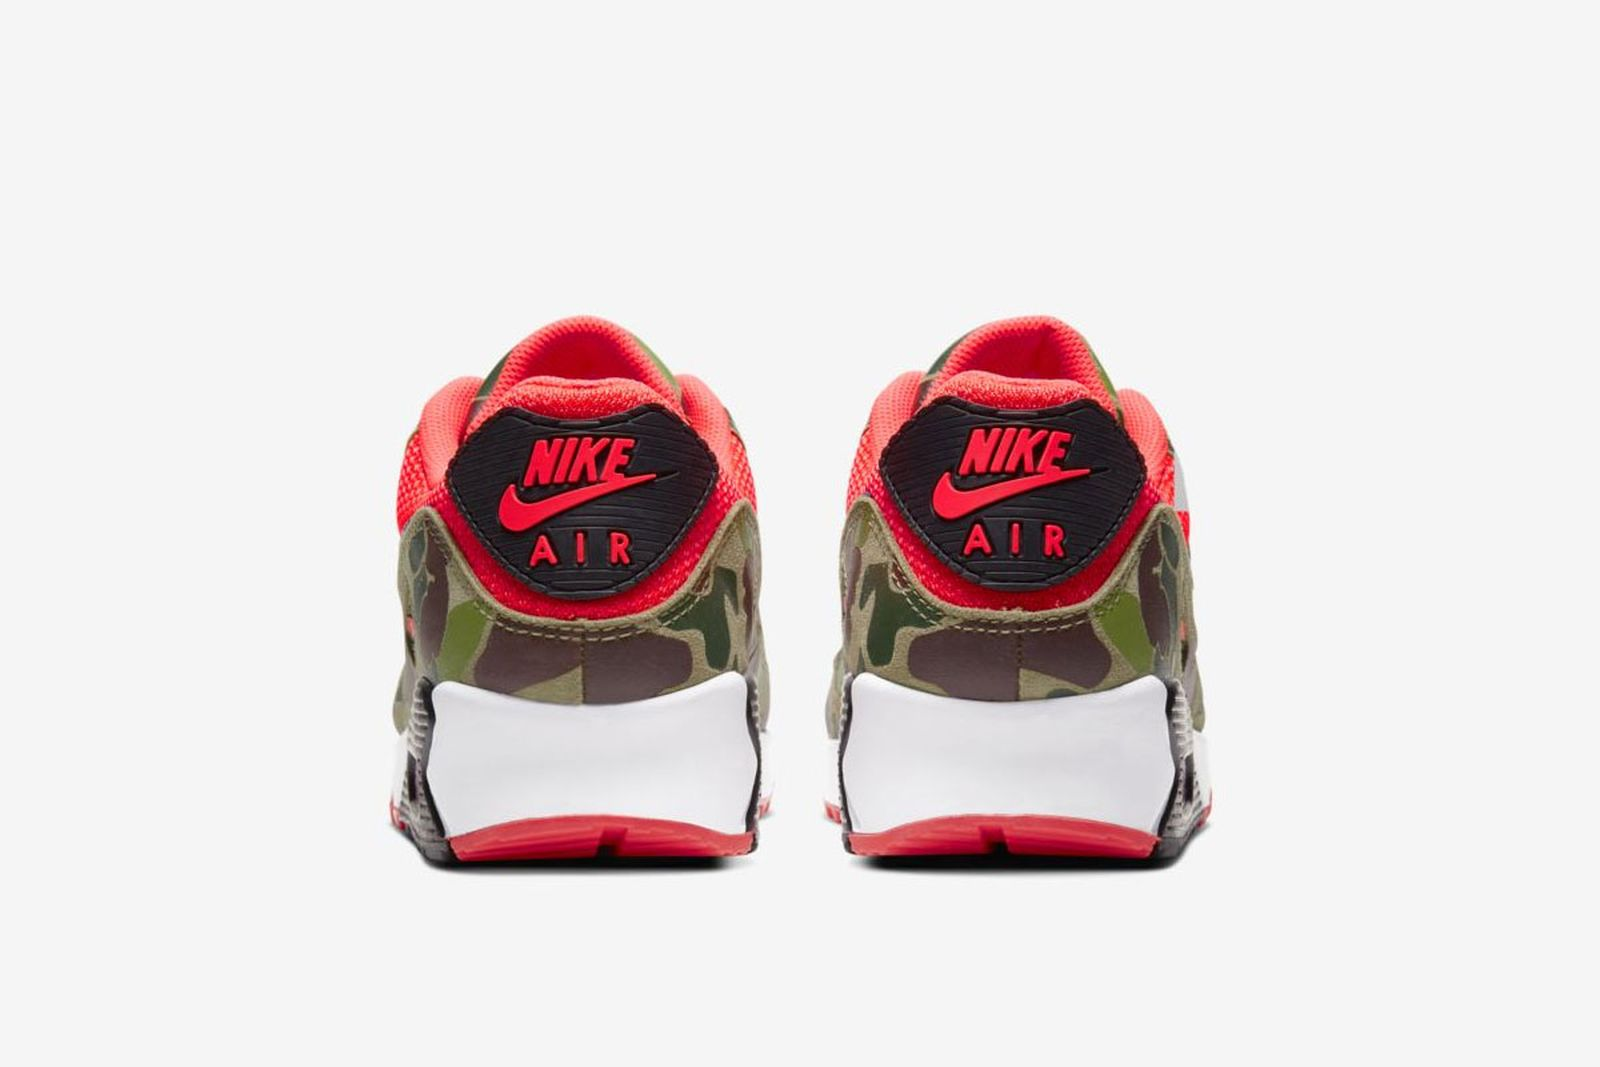 nike-air-max-90-reverse-duck-camo-release-date-price-01